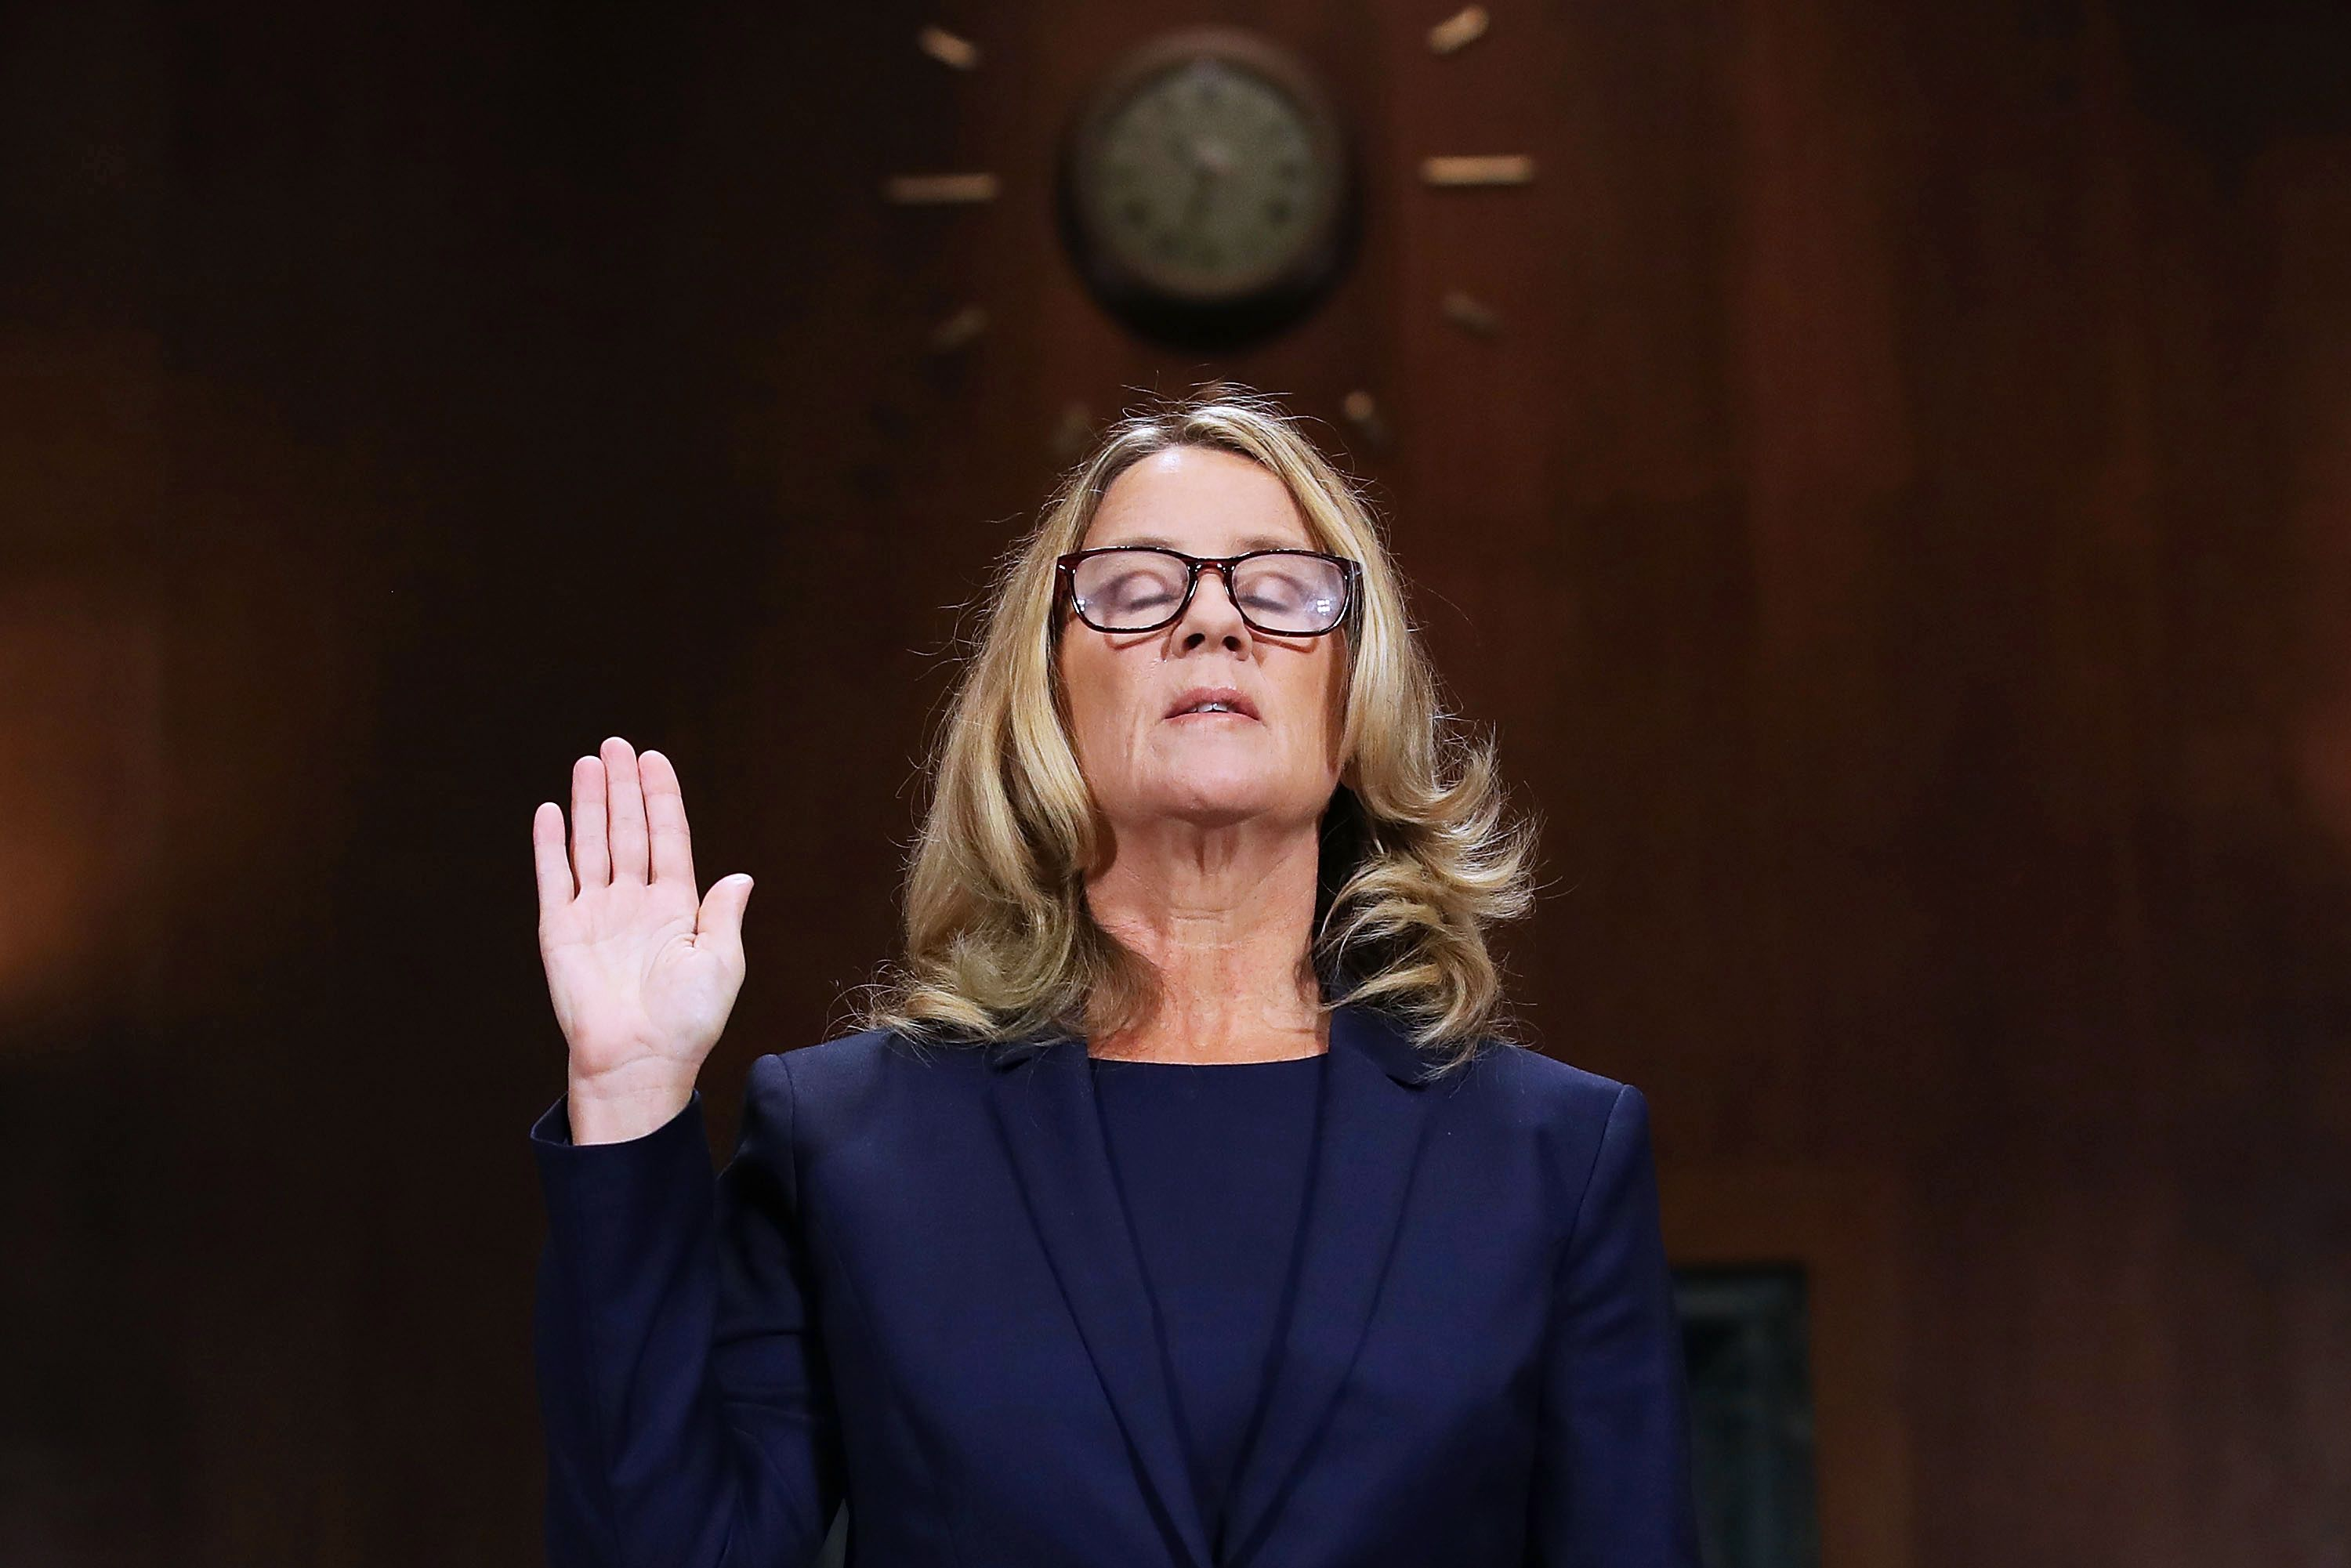 ae0e559be2fbb These Celebrities Have Made Their Support for Christine Blasey Ford Public  on Social Media